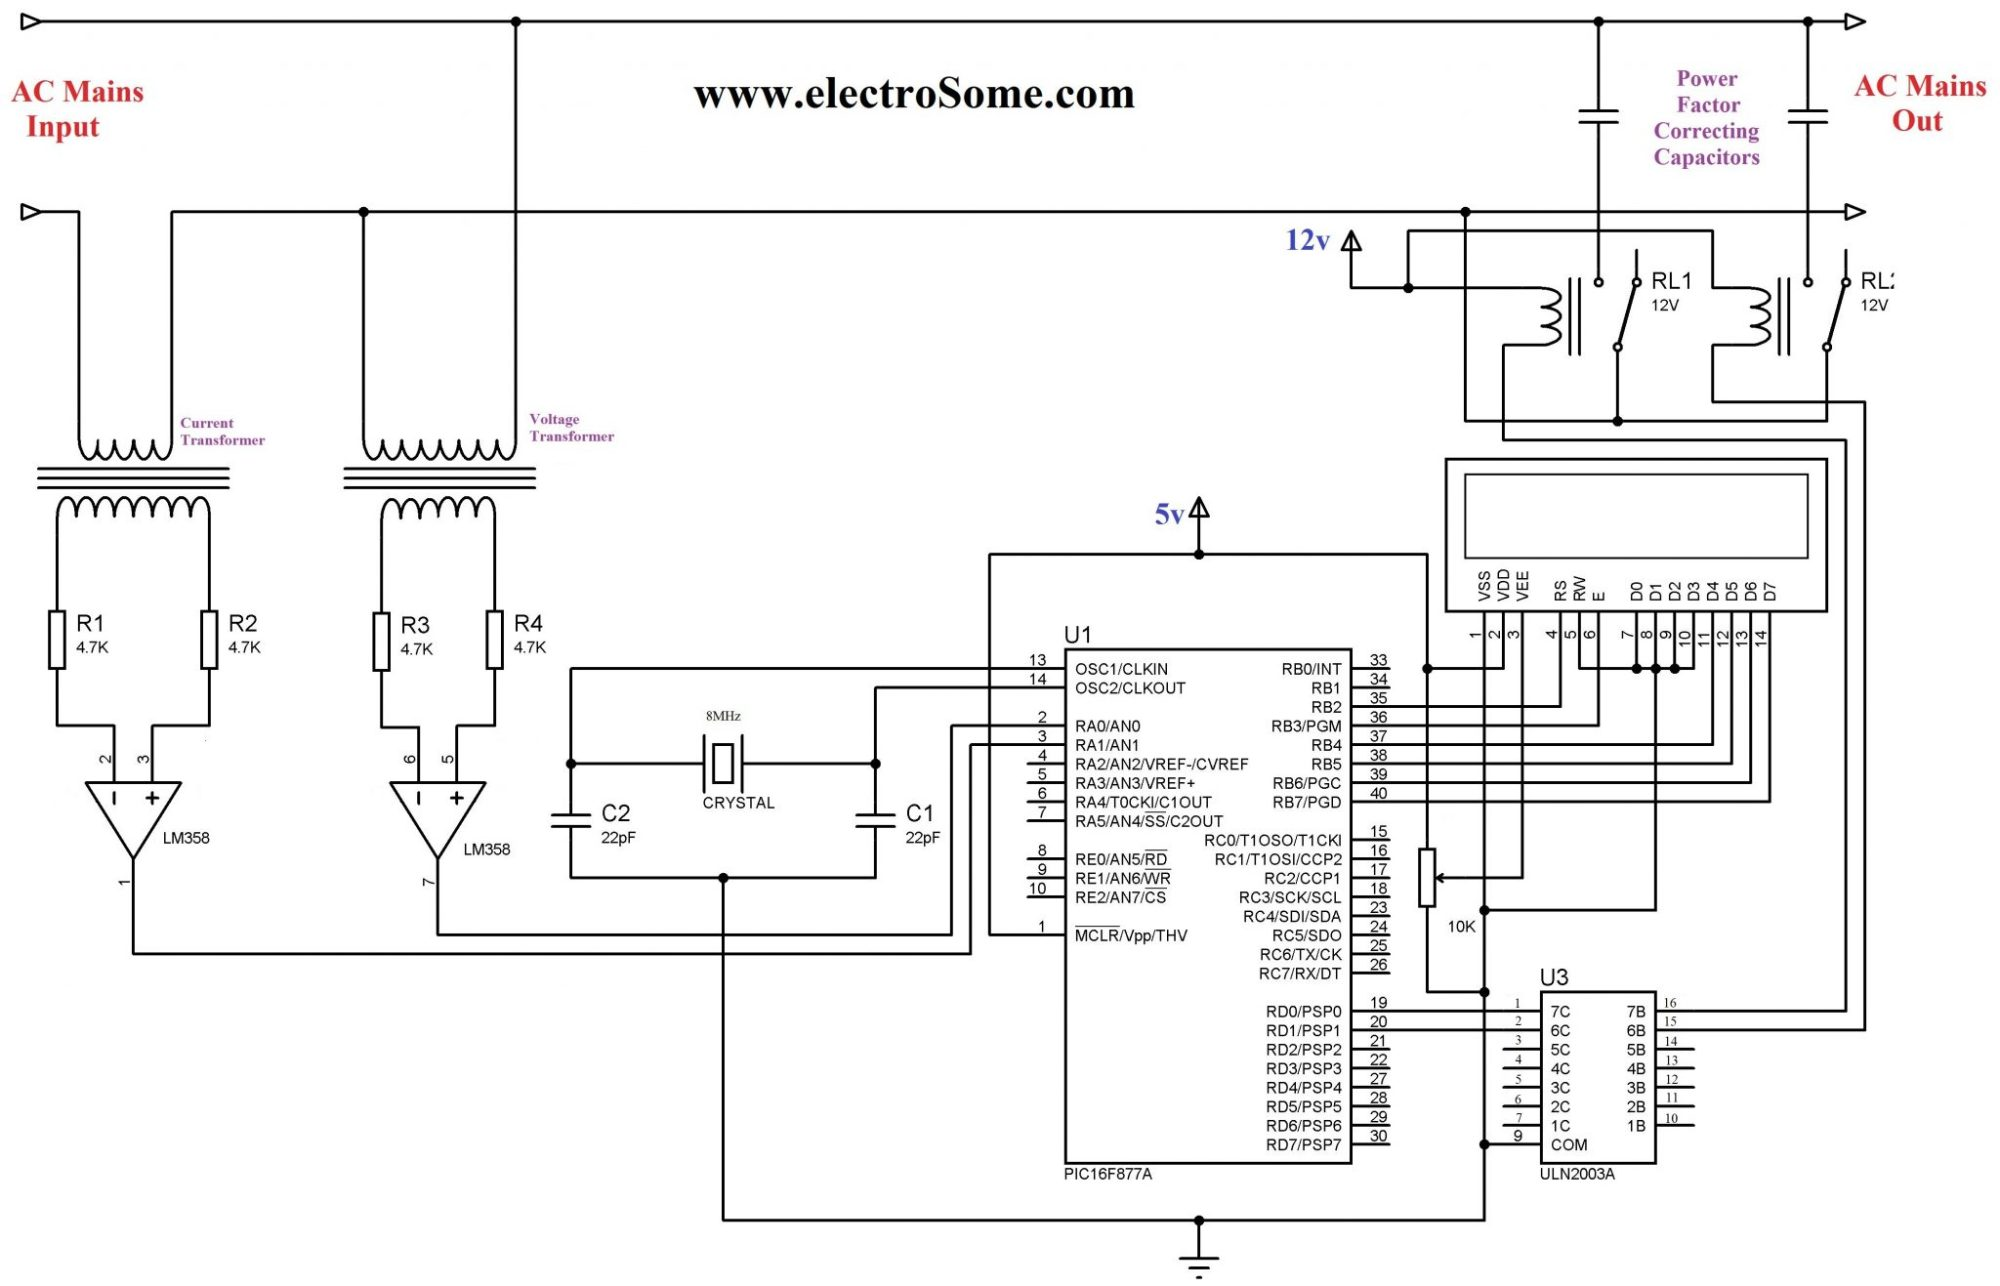 hight resolution of automatic power factor controller using pic microcontroller circuit diagram